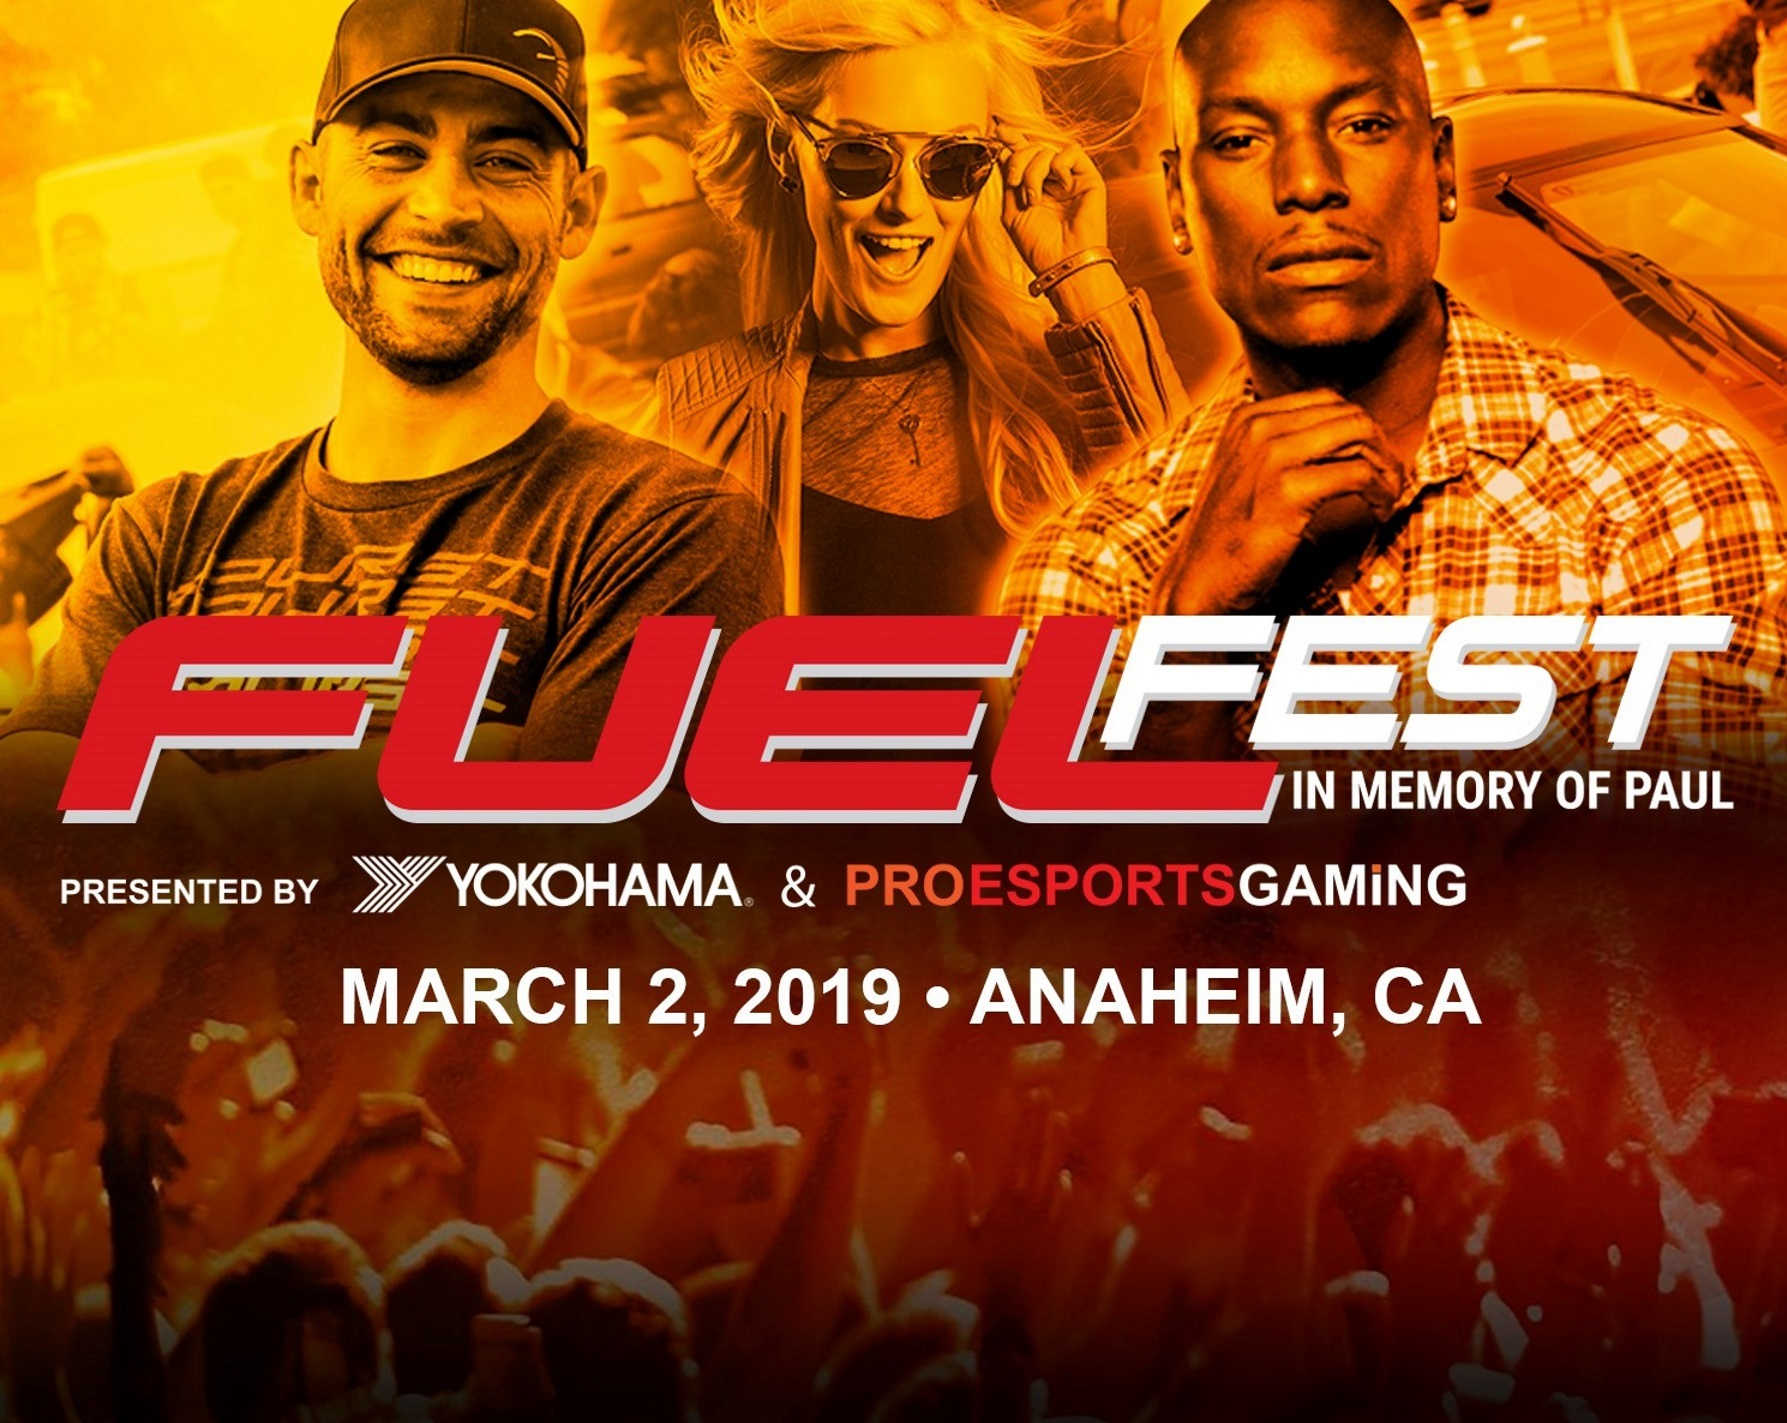 Yokohama Partnering with FuelFest